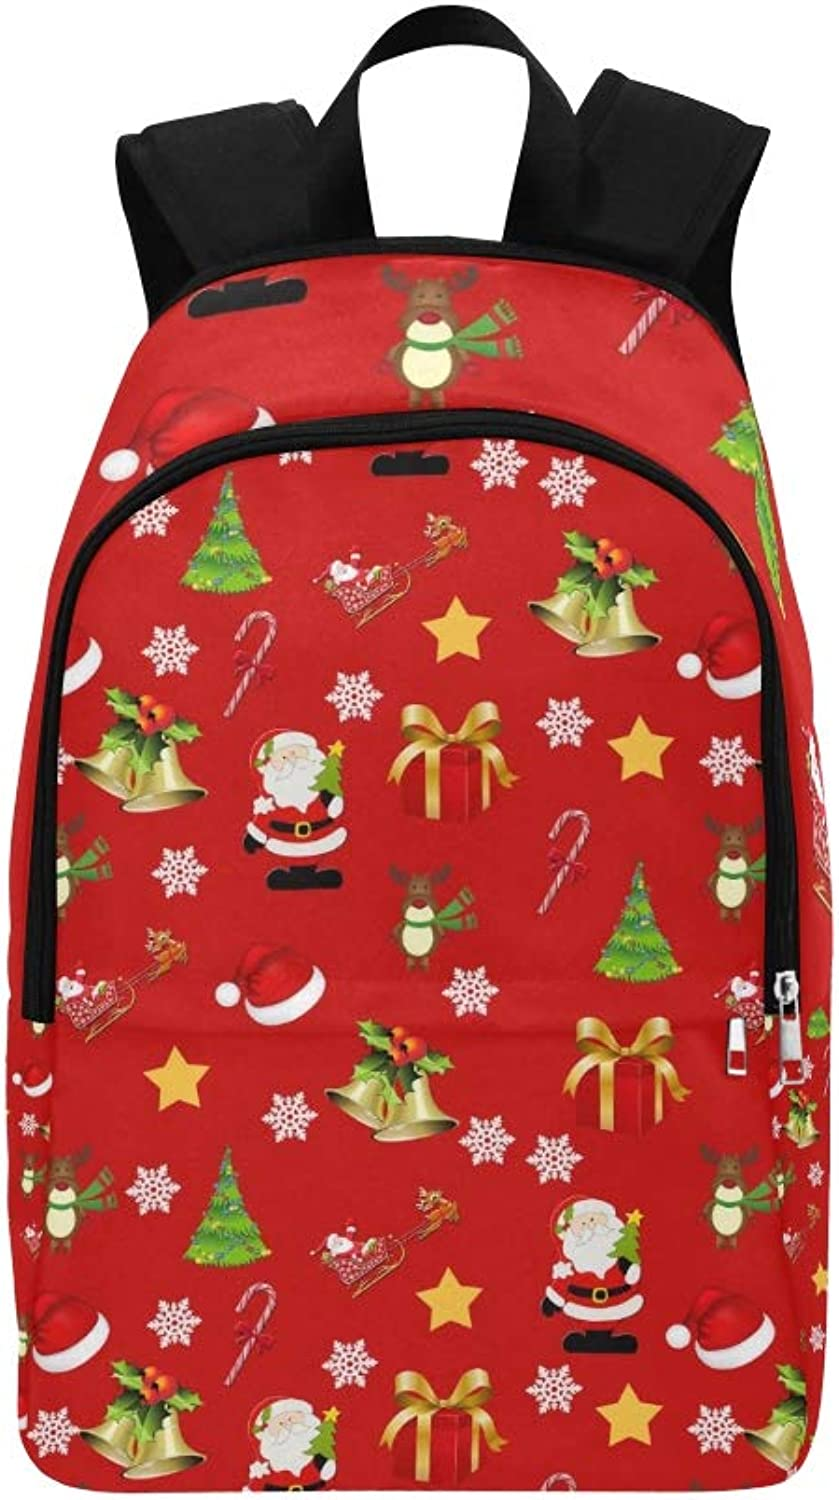 Travel School Daypack Bag On Christmas Red Casual College WHYEI9D2